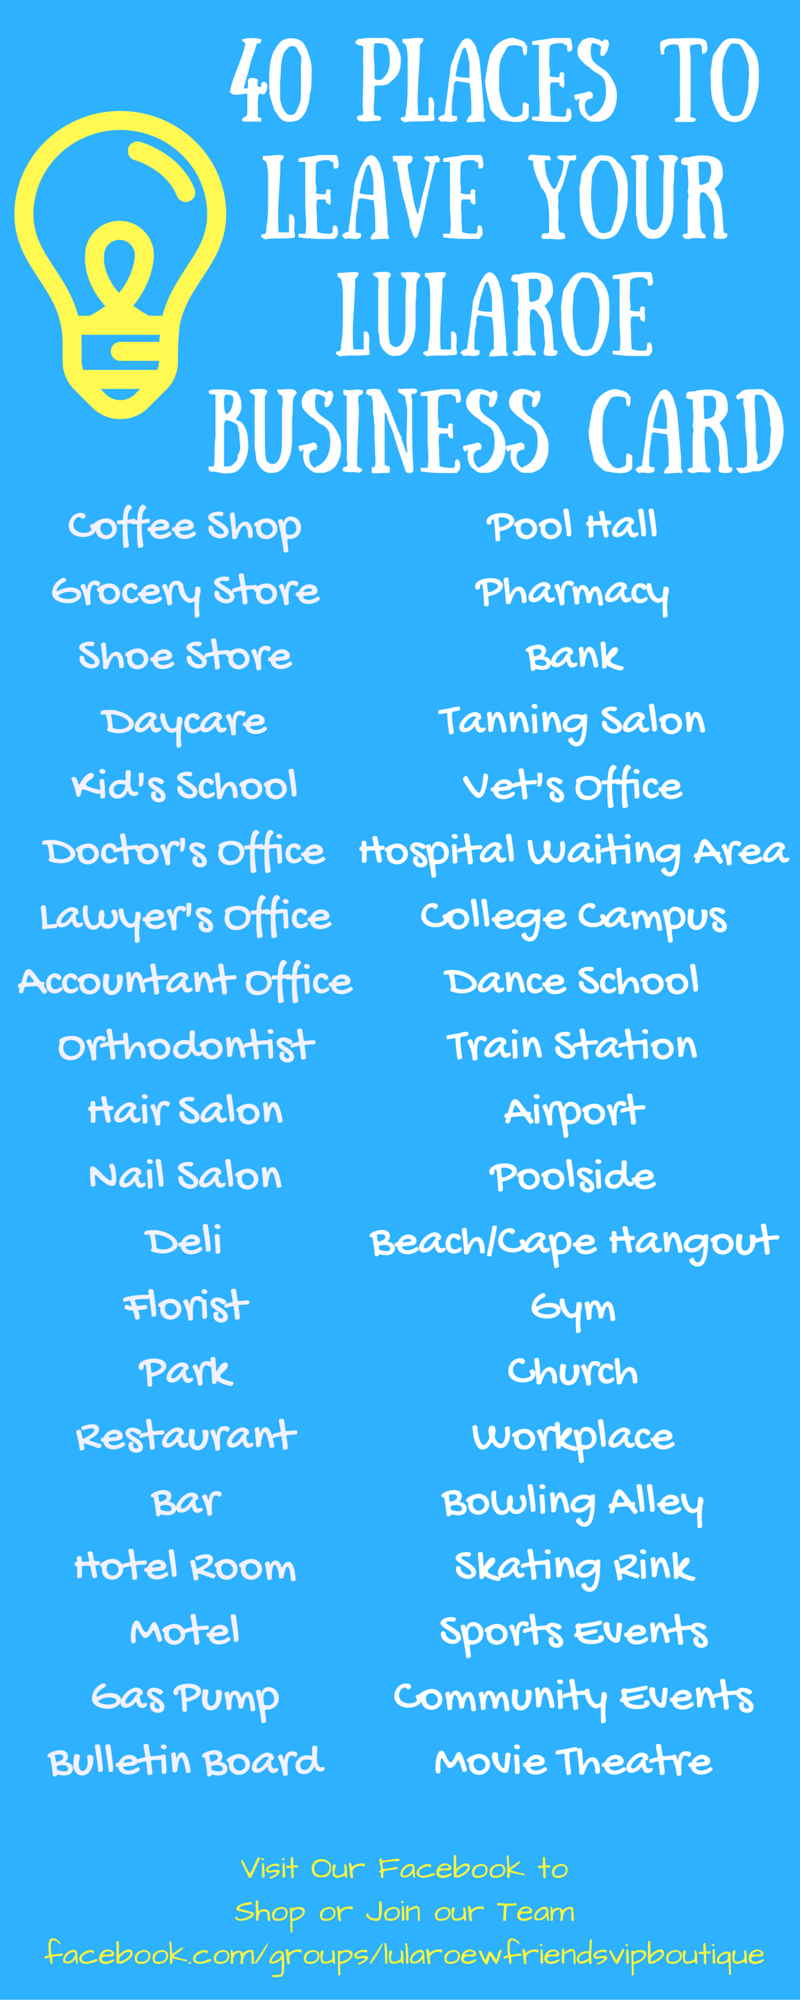 40 places to leave a lularoe business card visit our facebook group 40 places to leave a lularoe business card visit our facebook group to learn more and to shop our collection colourmoves